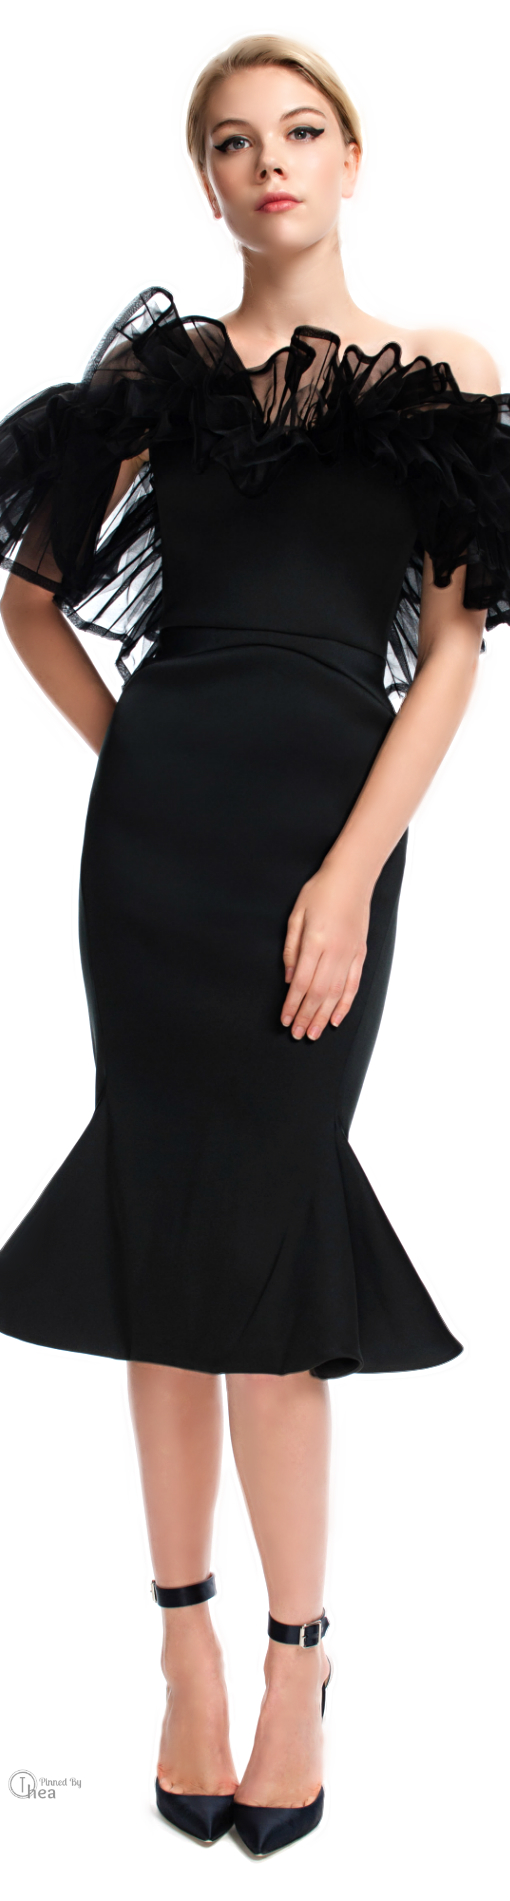 Zac Posen Cocktail Dresses 73